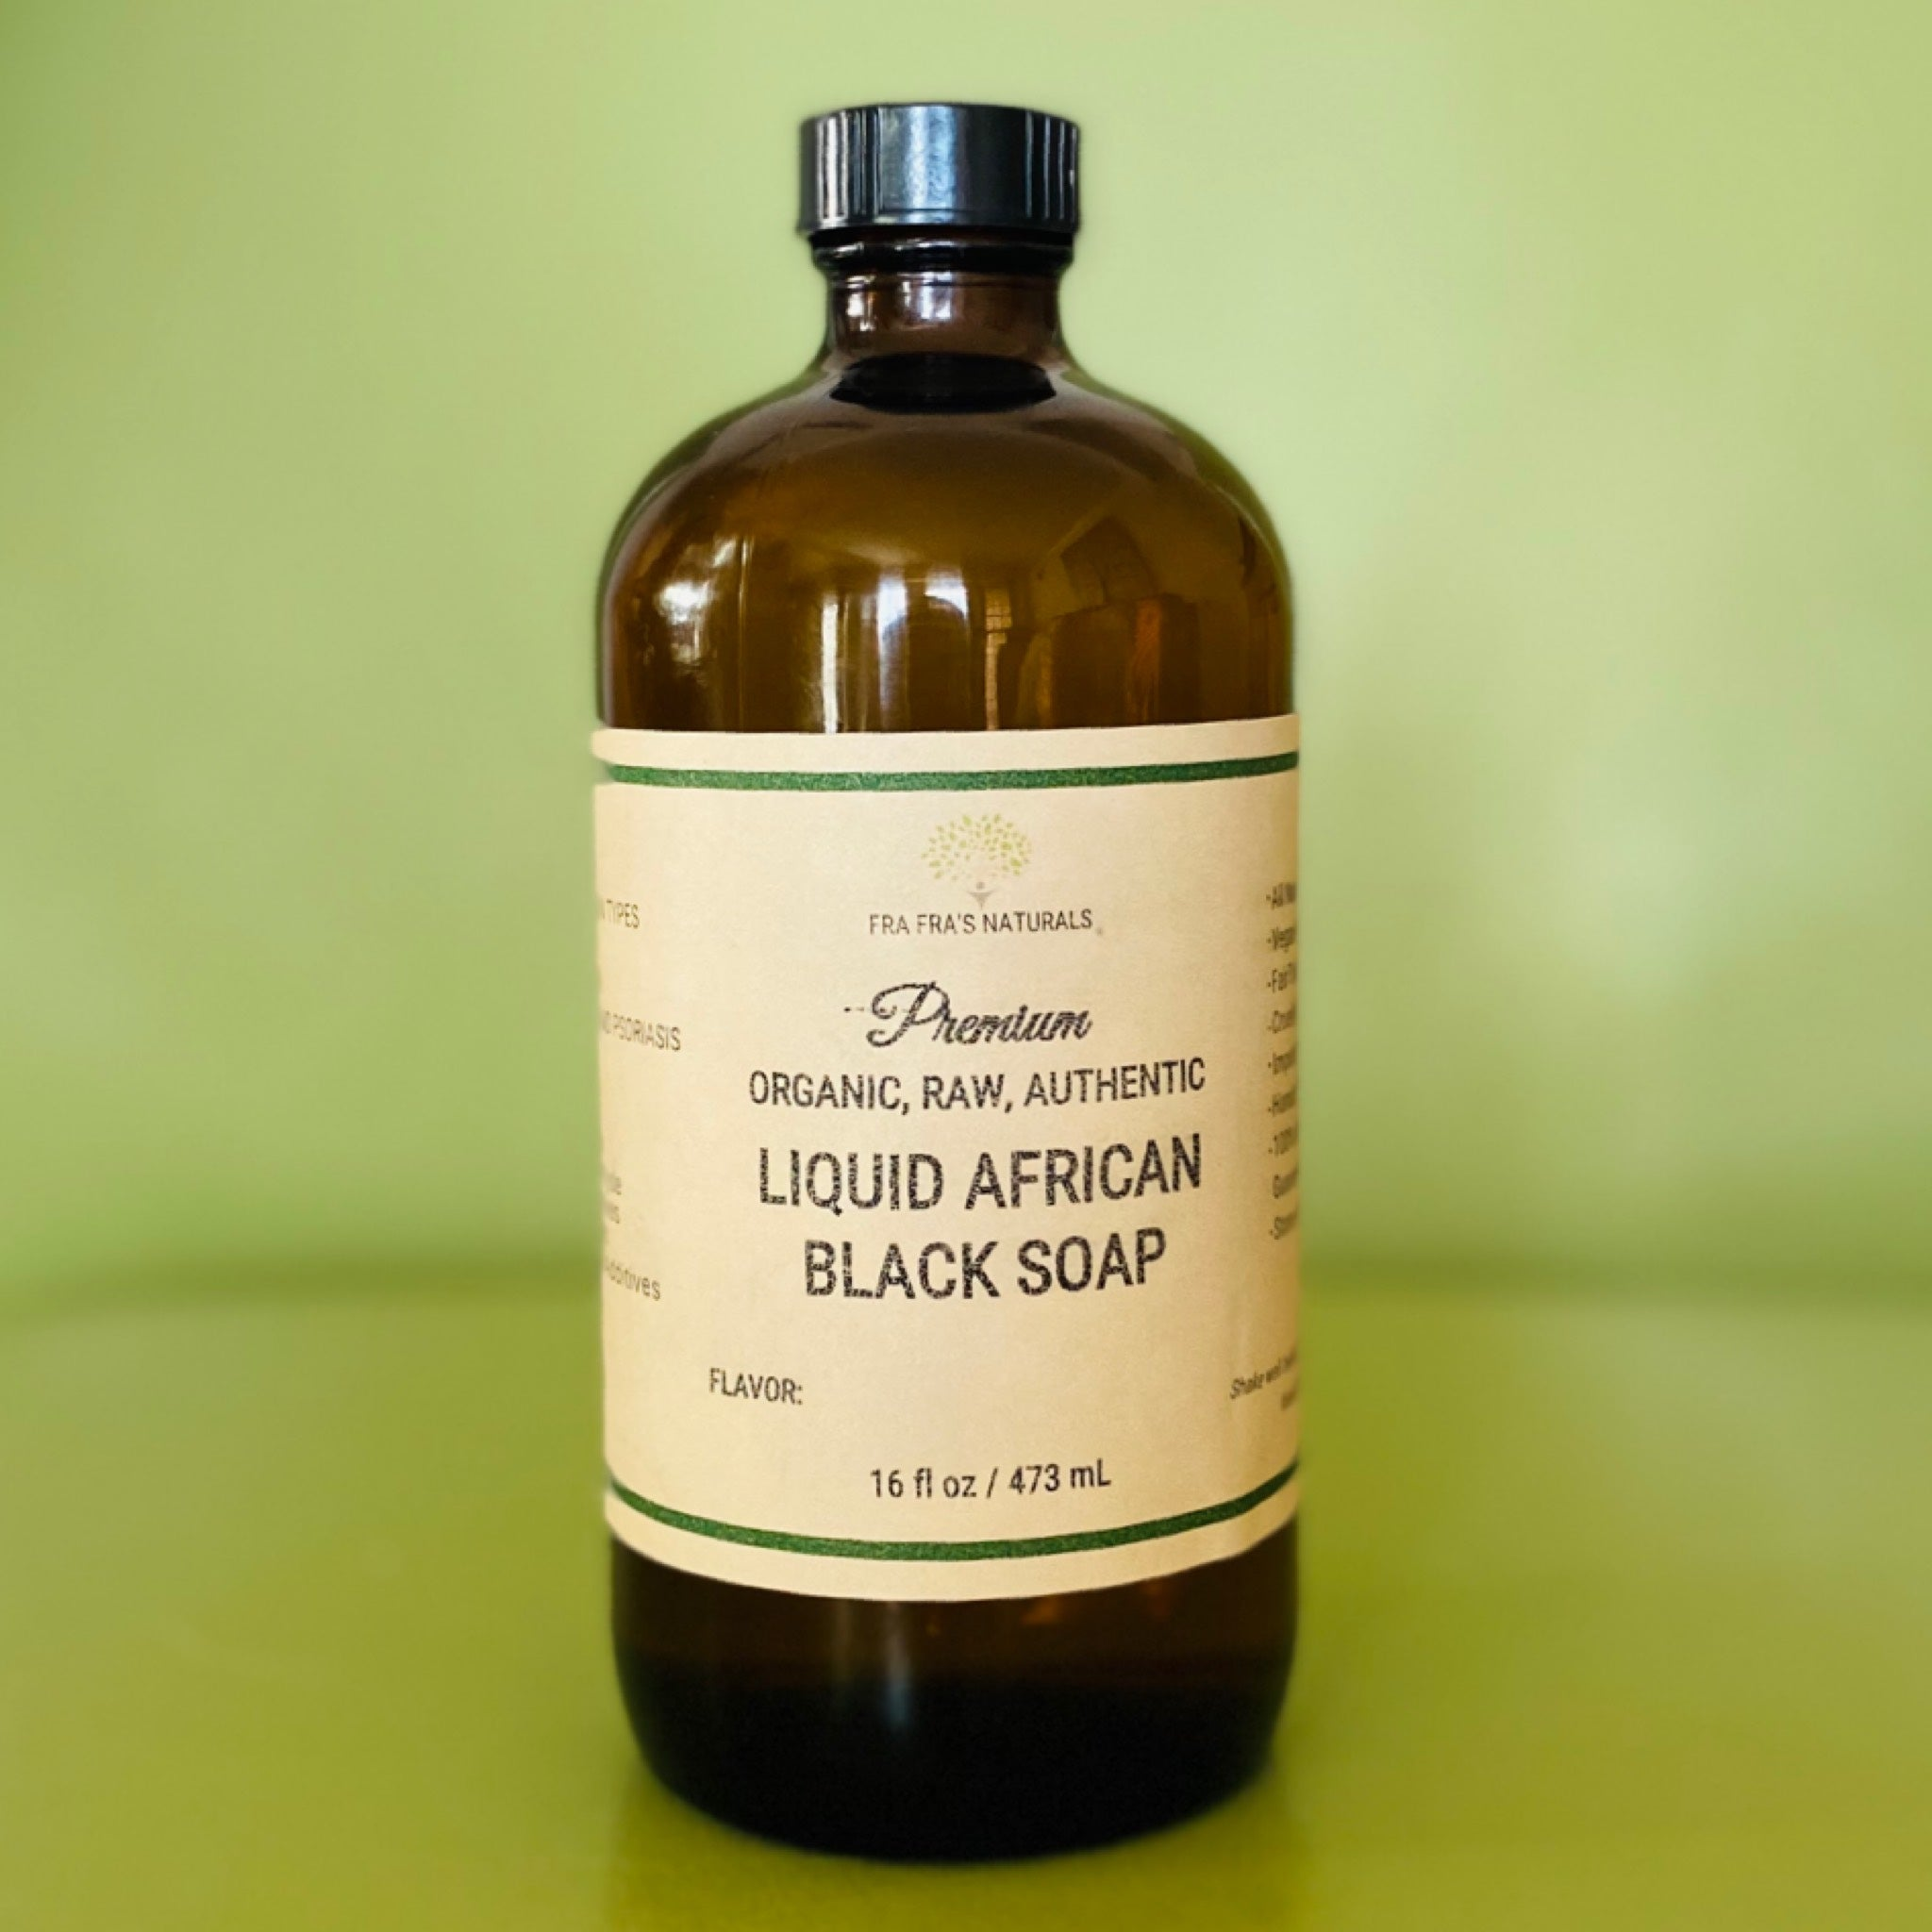 Fra Fra's Naturals | Premium Organic Raw Liquid African Black Soap - 16 oz